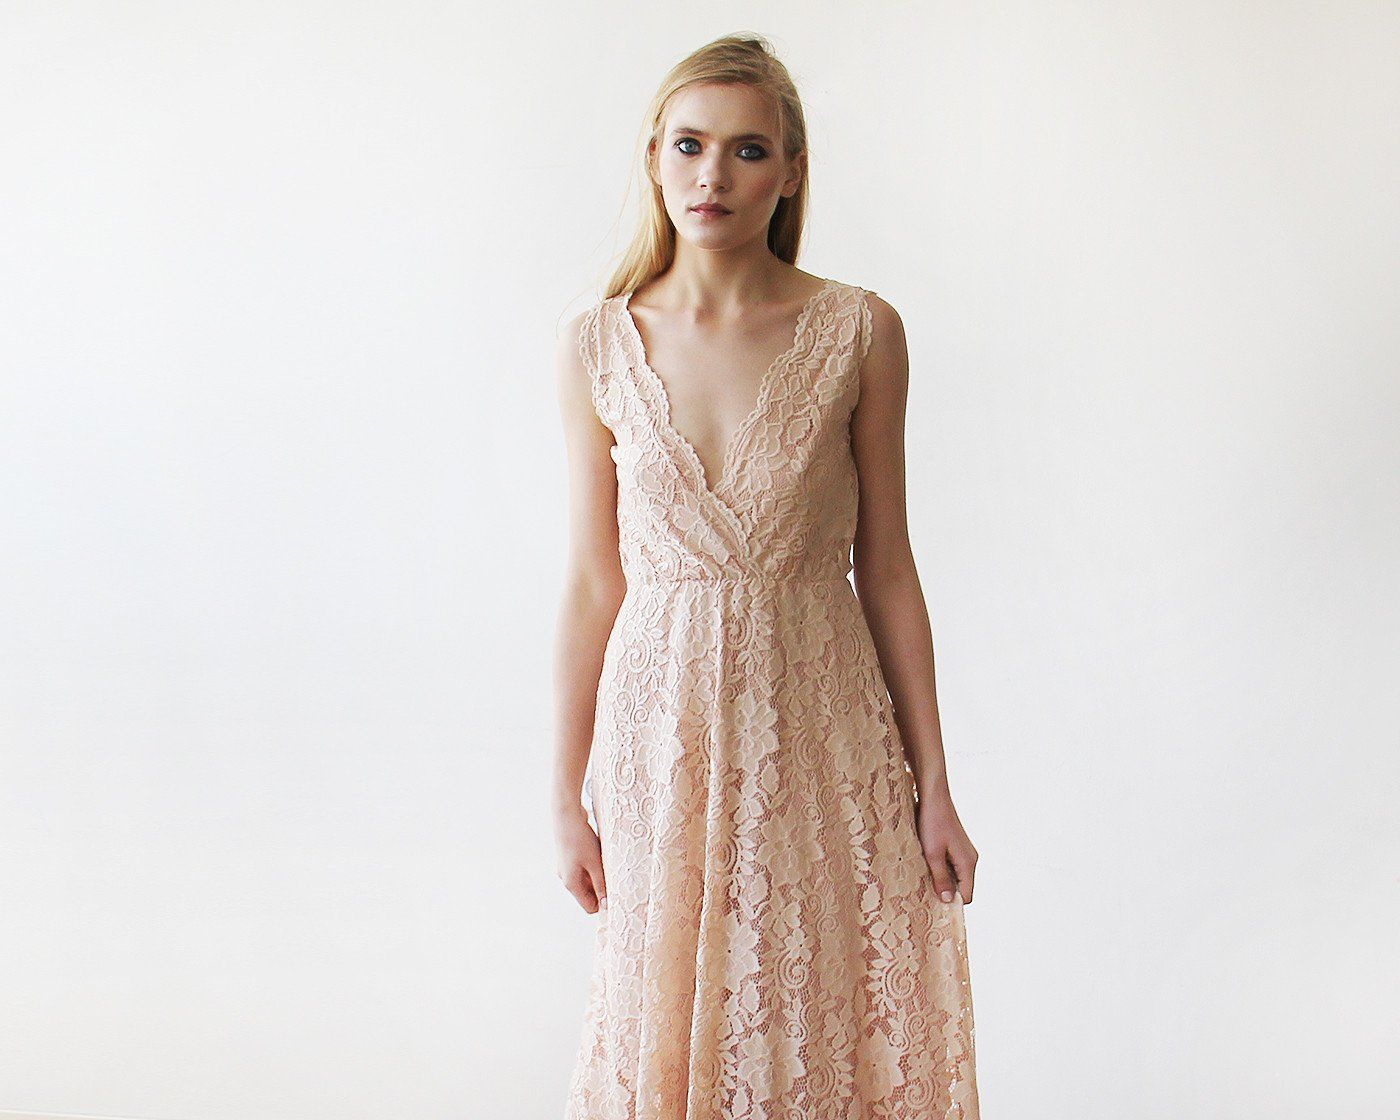 Blush Pink Sleeveless Lace Maxi Gown 1150 - Blushfashion